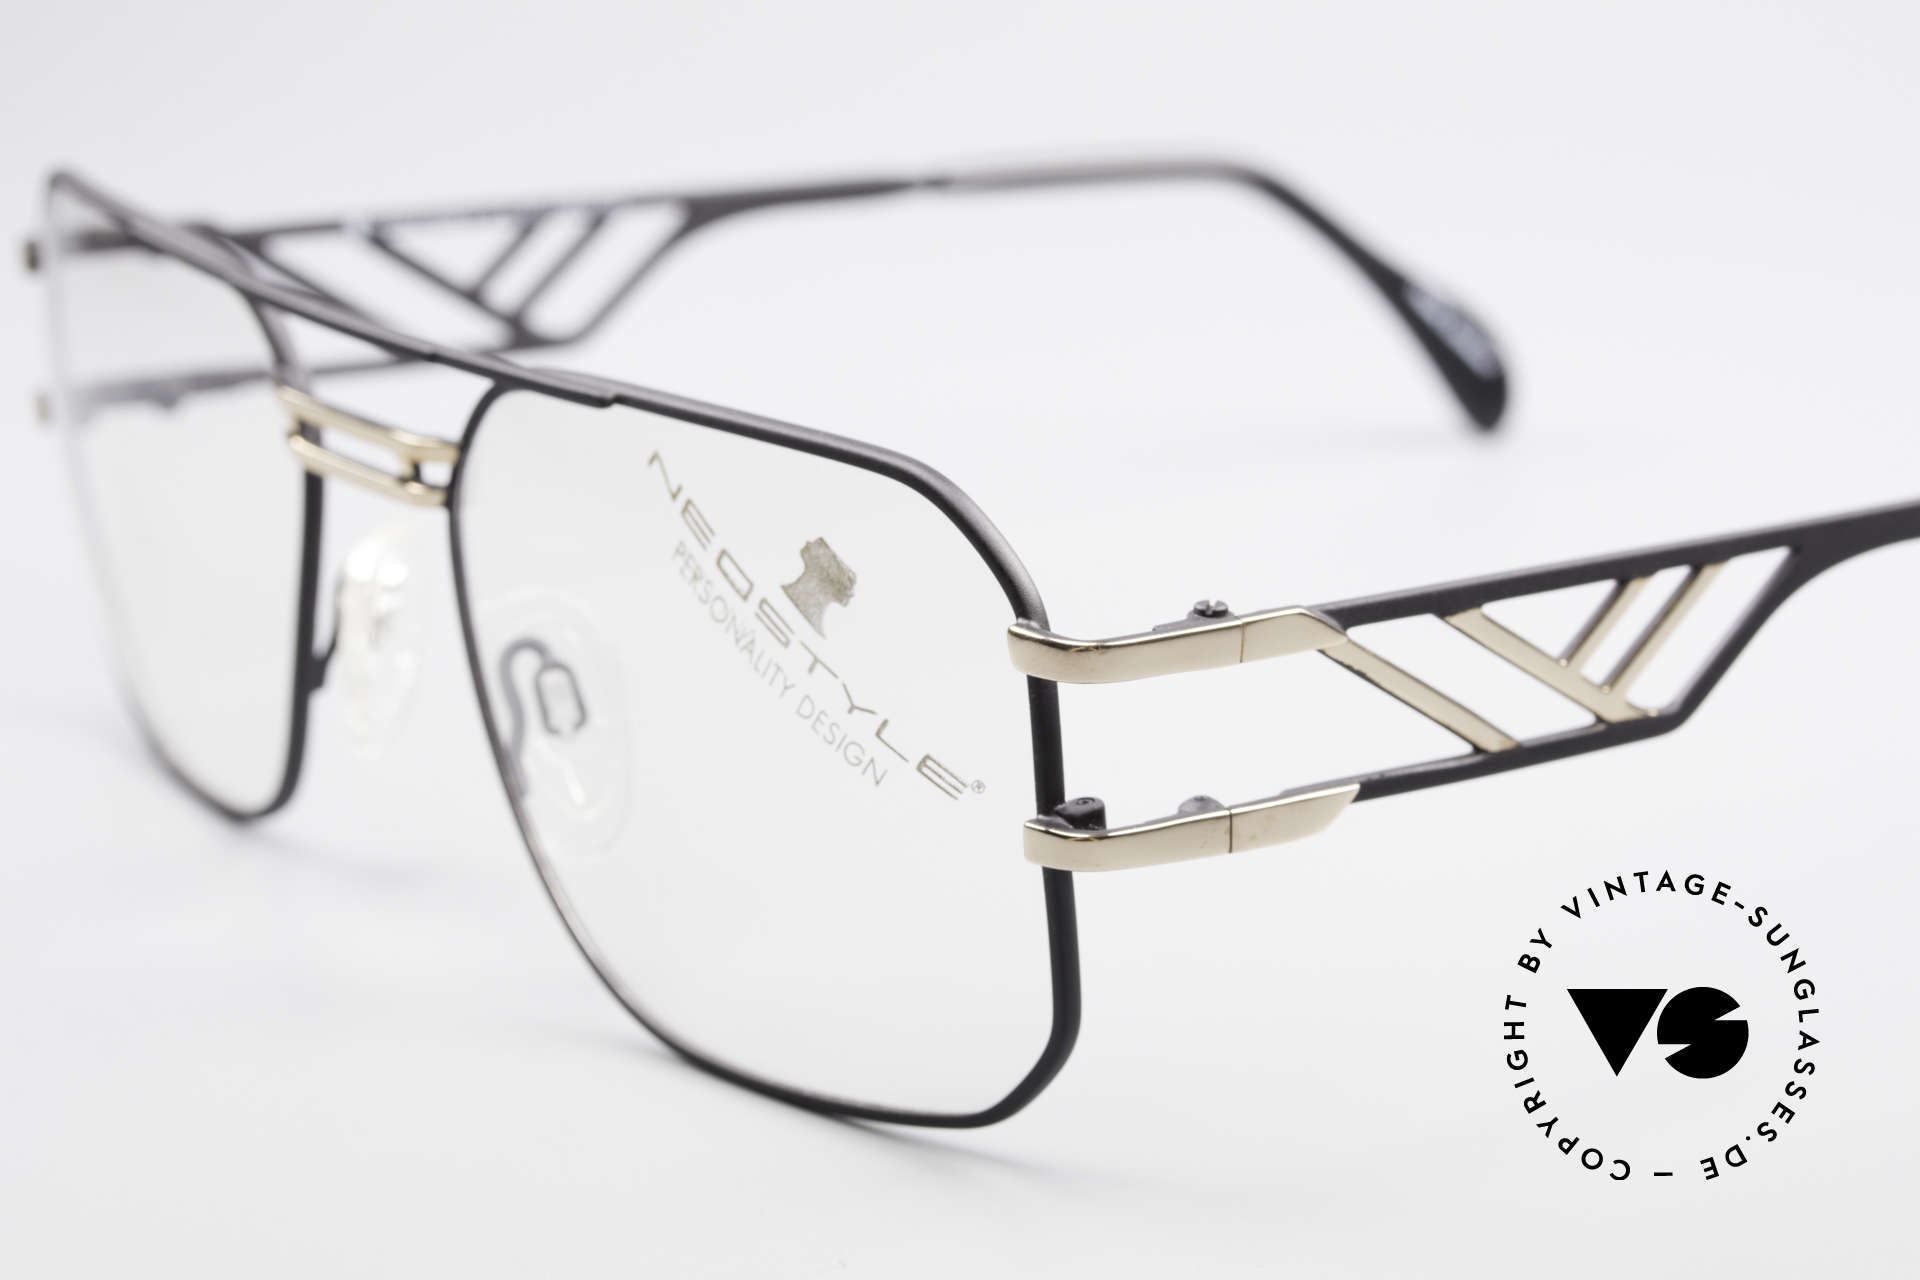 Neostyle Boutique 306 Champion Vintage Frame 80s, 1st class wearing comfort (Champion Edition!), Made for Men